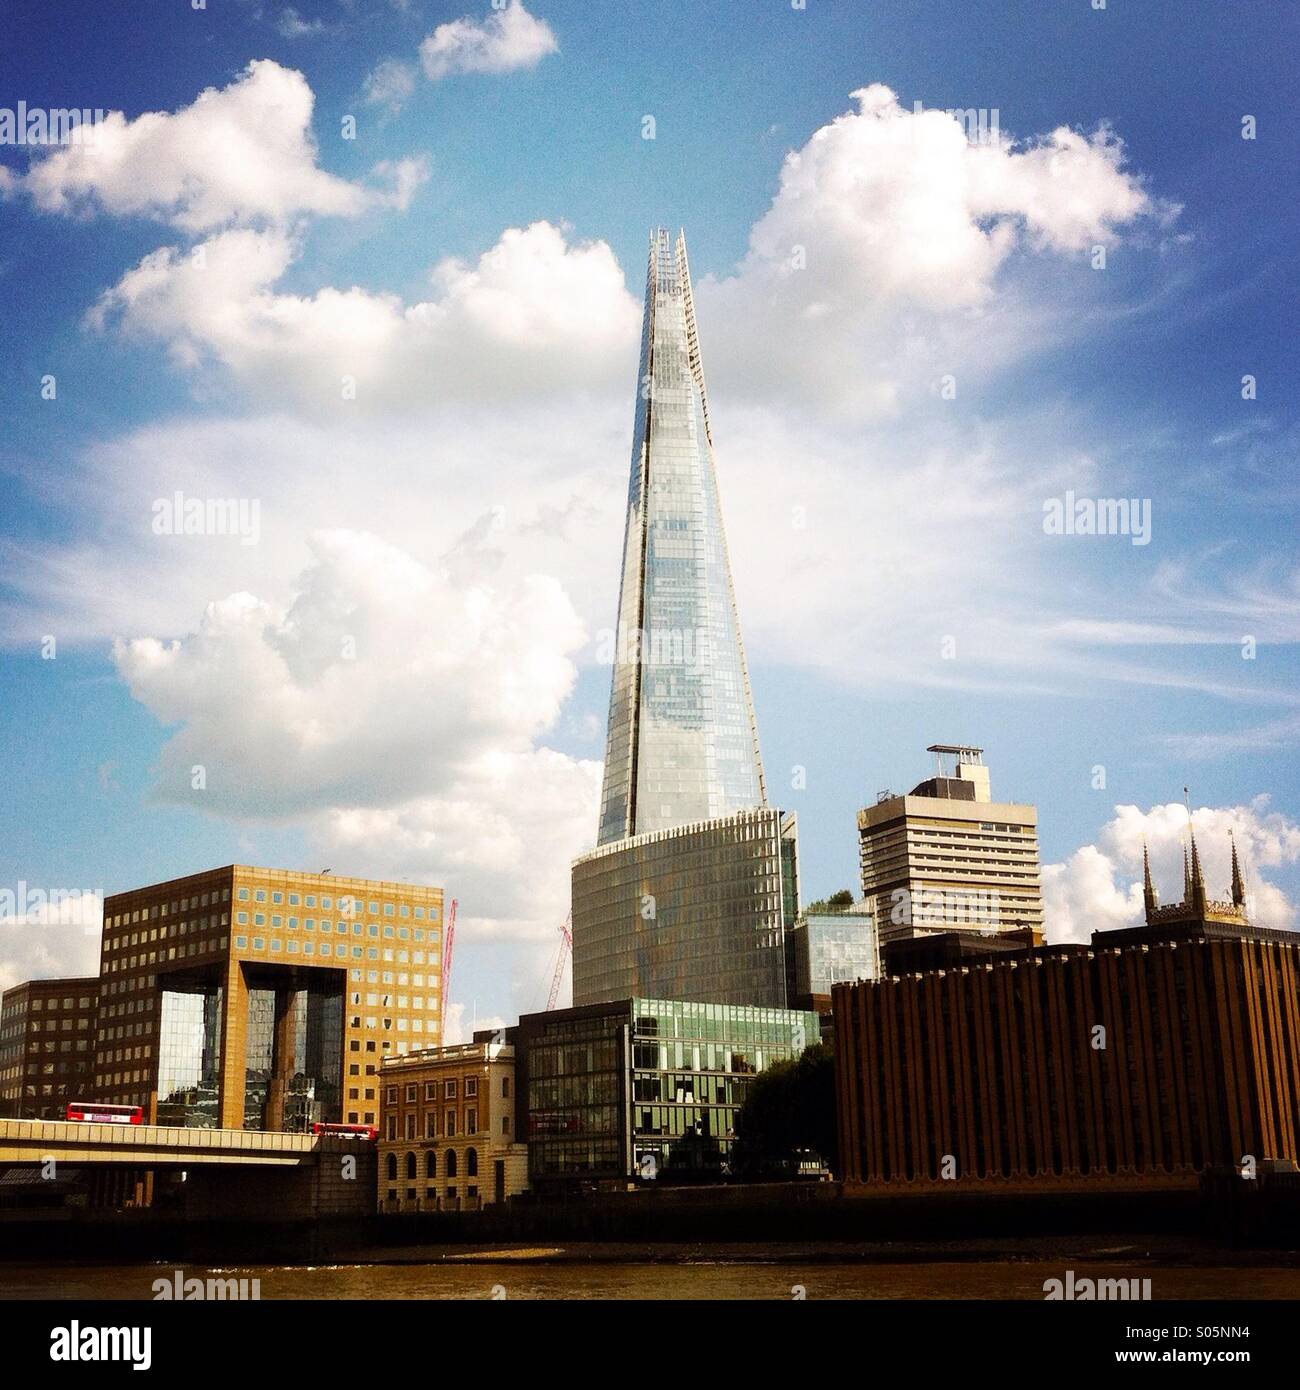 The shard and other buildings. London England UK. - Stock Image